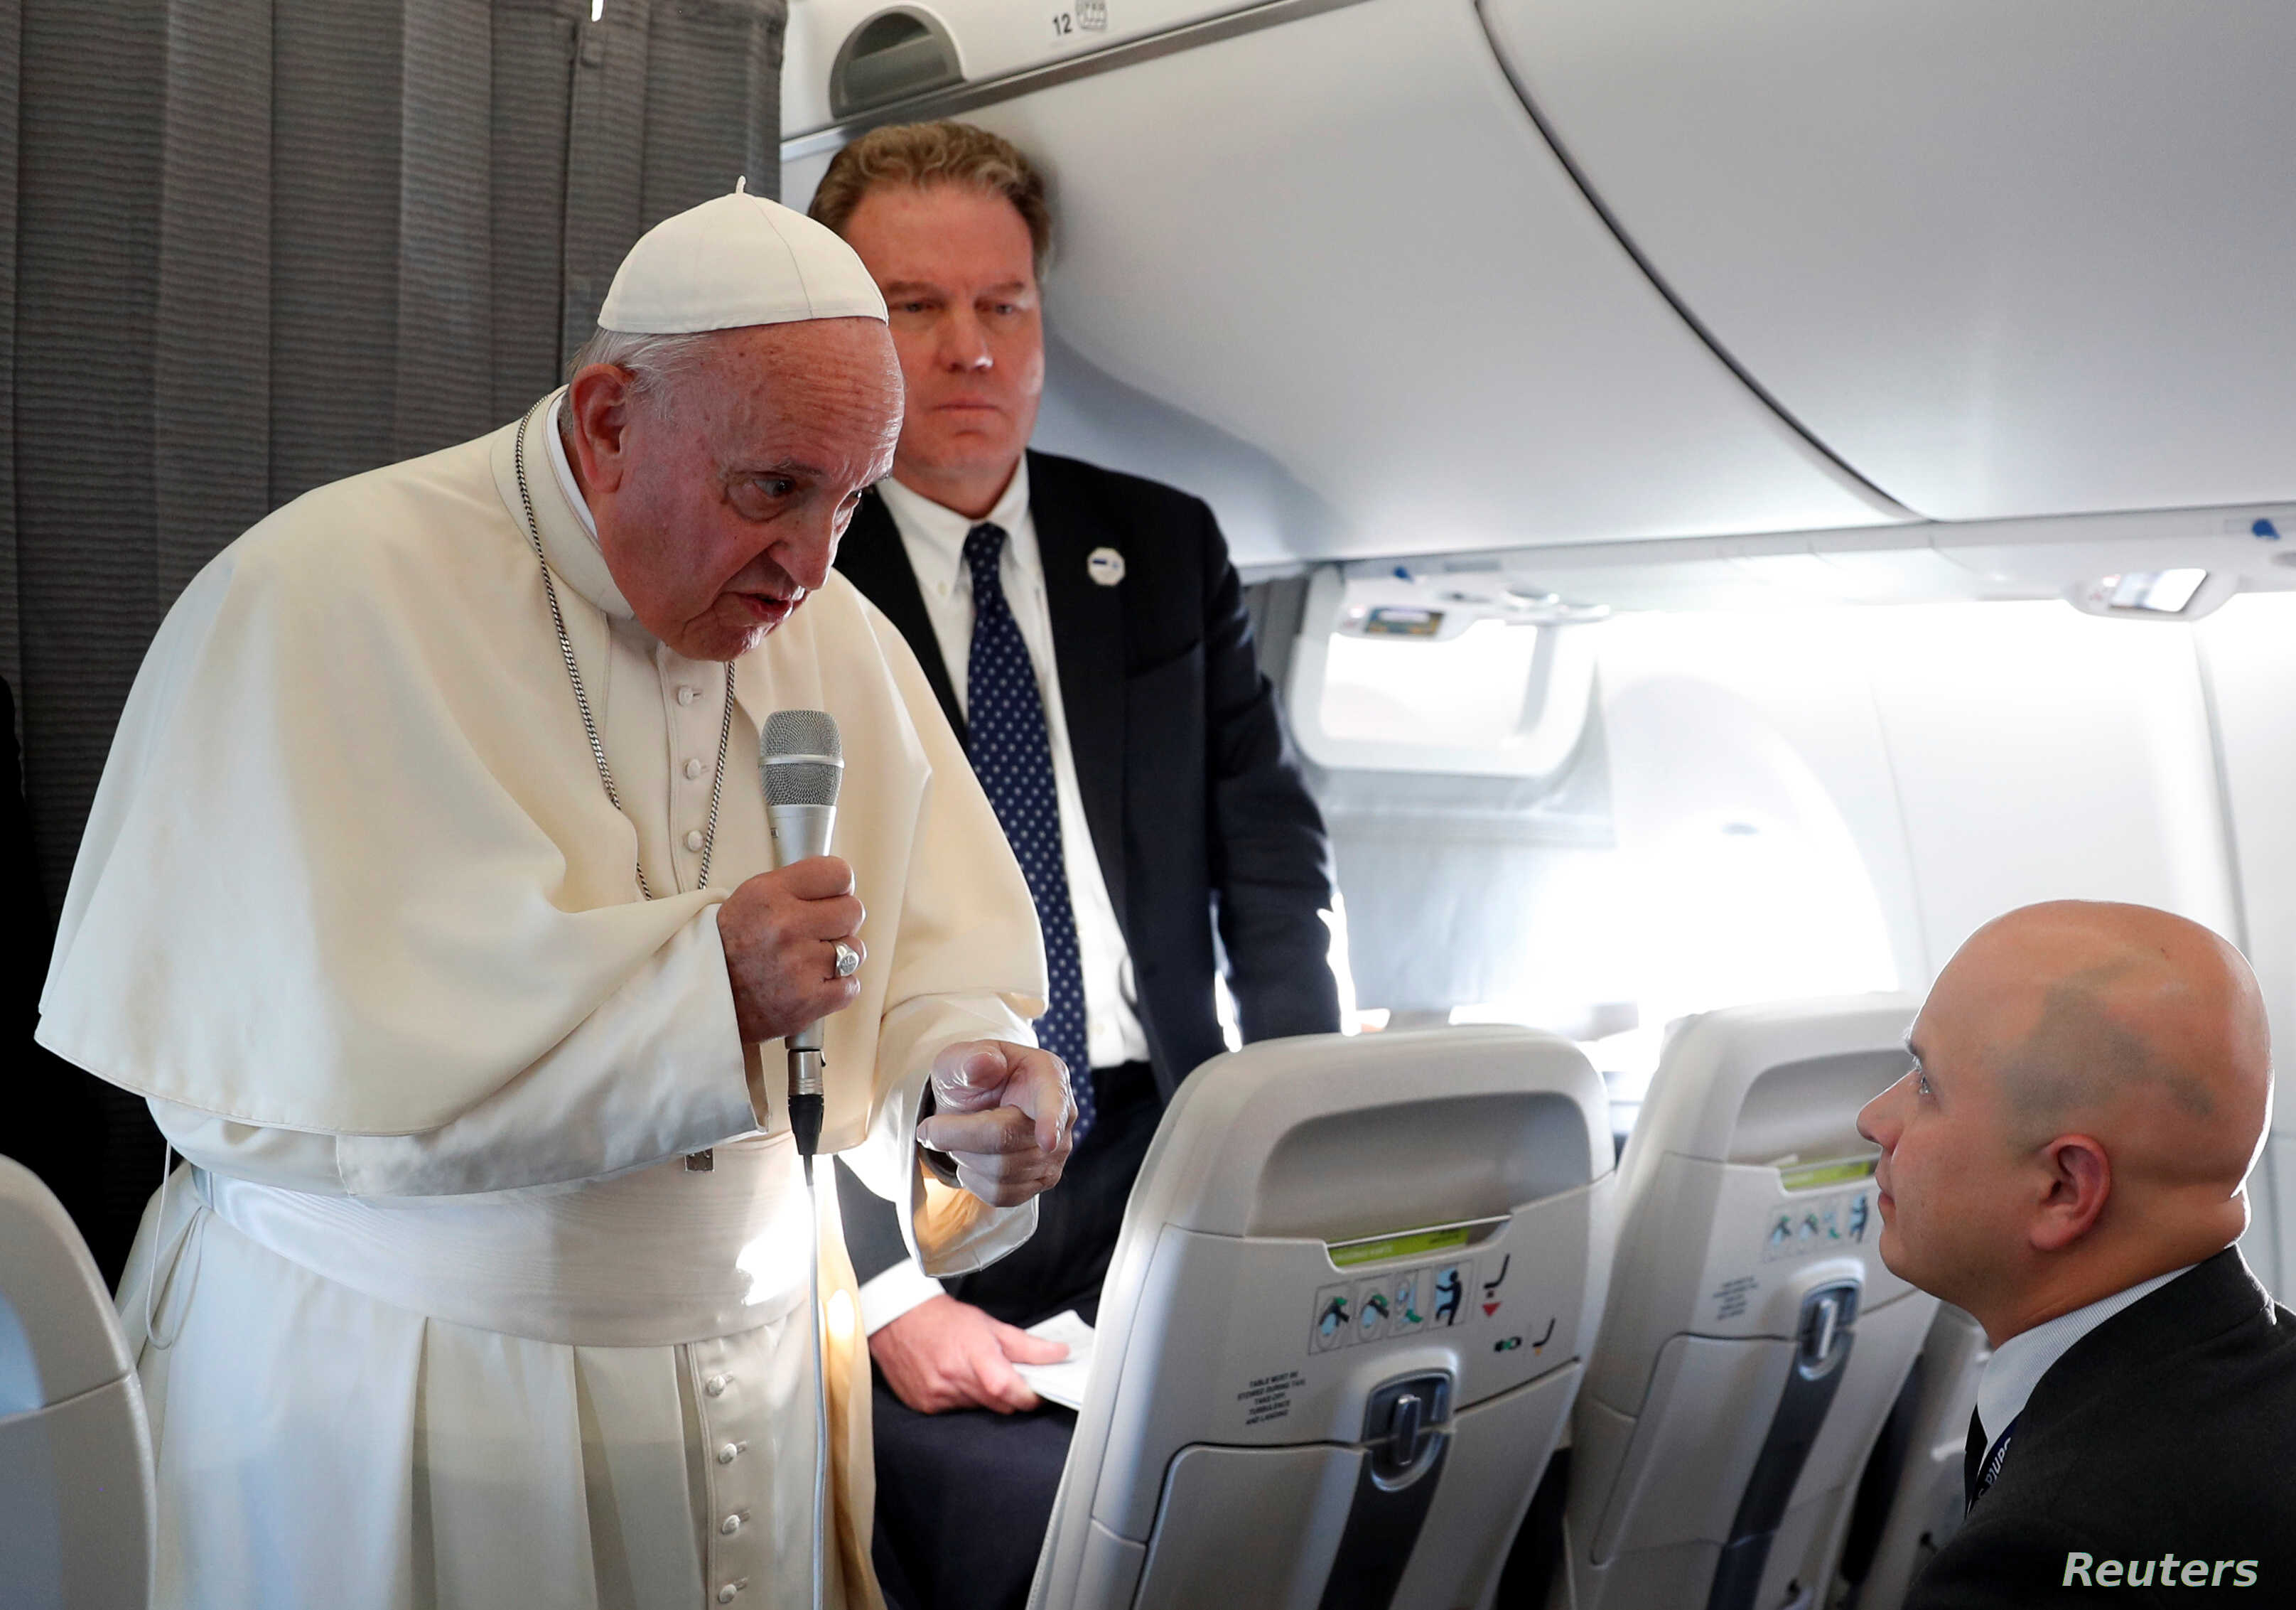 Pope Francis speaks with reporters on his flight back from Tallinn, Estonia, after the final leg of his visit to the Baltic states, Sept. 25, 2018.